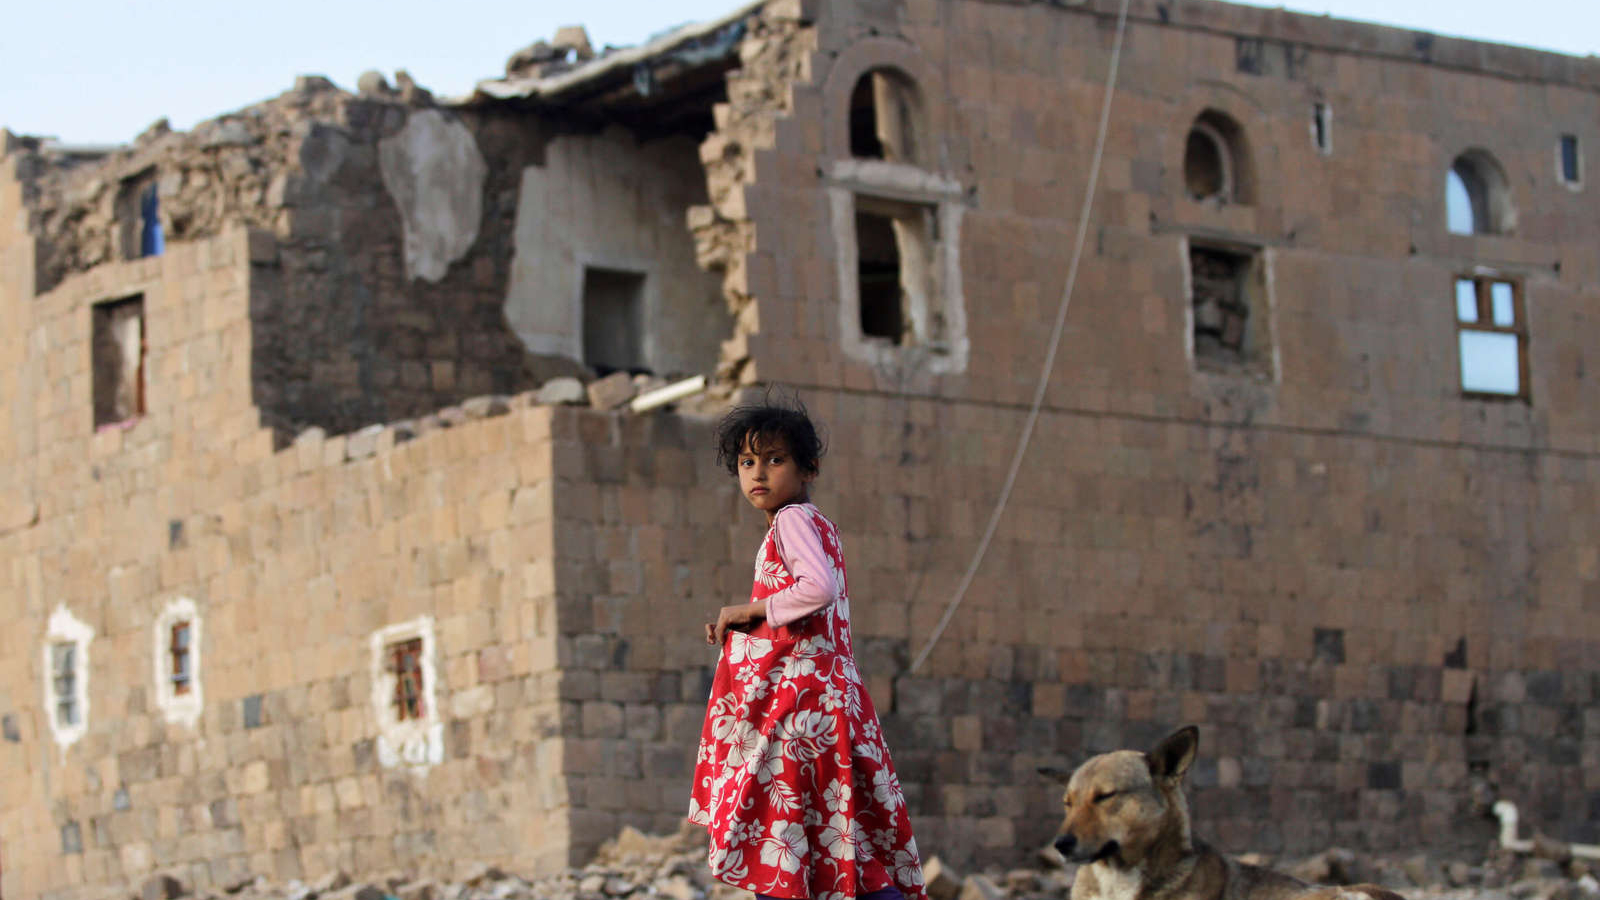 A little girl wearing a red dress stands next to a dog near a destroyed building.